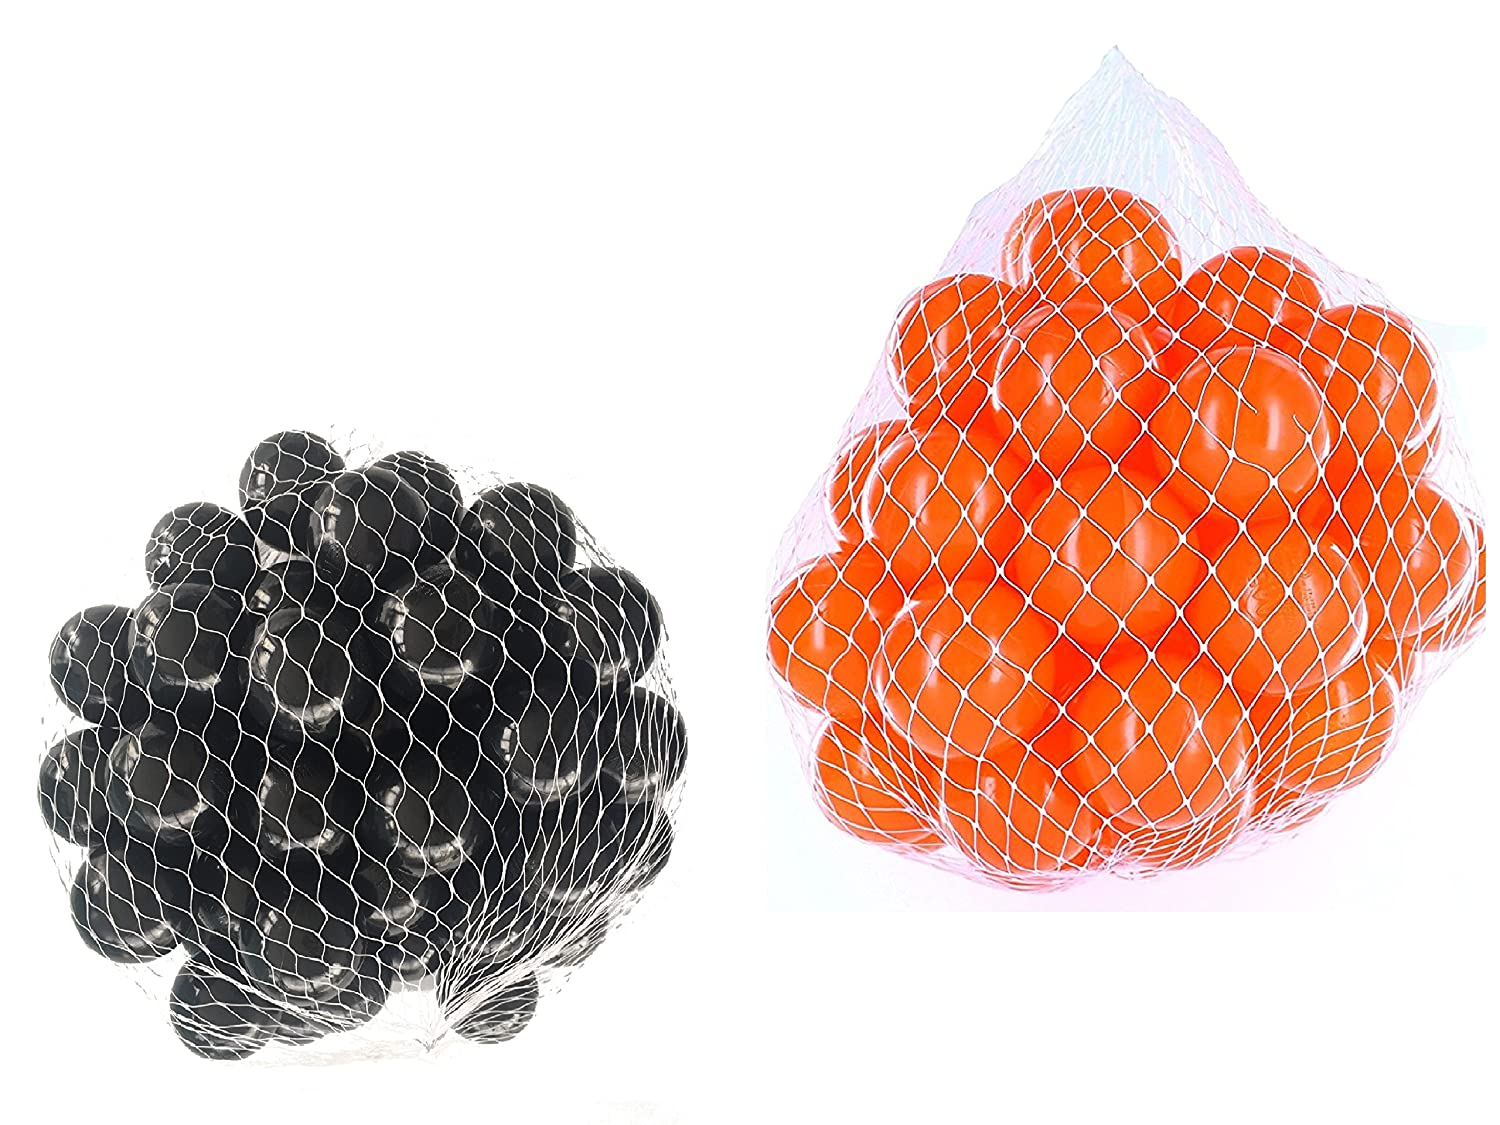 100 Balls for Ball Pool Mix Mix with Orange and Black mybällebad